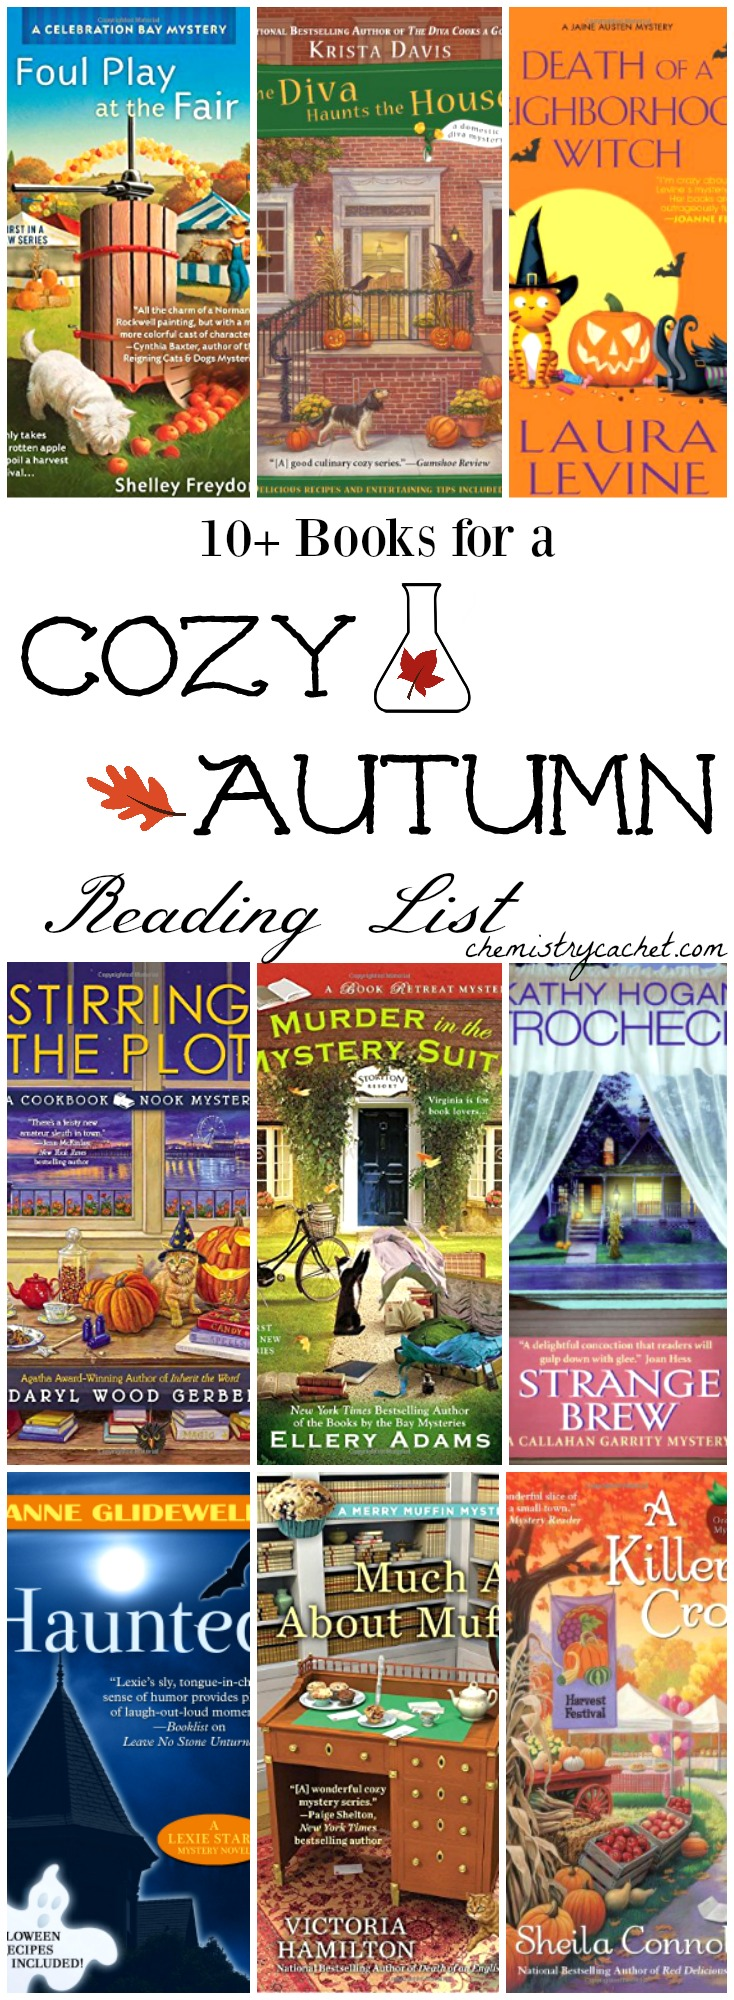 10+ books for a cozy autumn reading list. Perfect autumn reading list for mystery lovers! on chemistrycachet.com